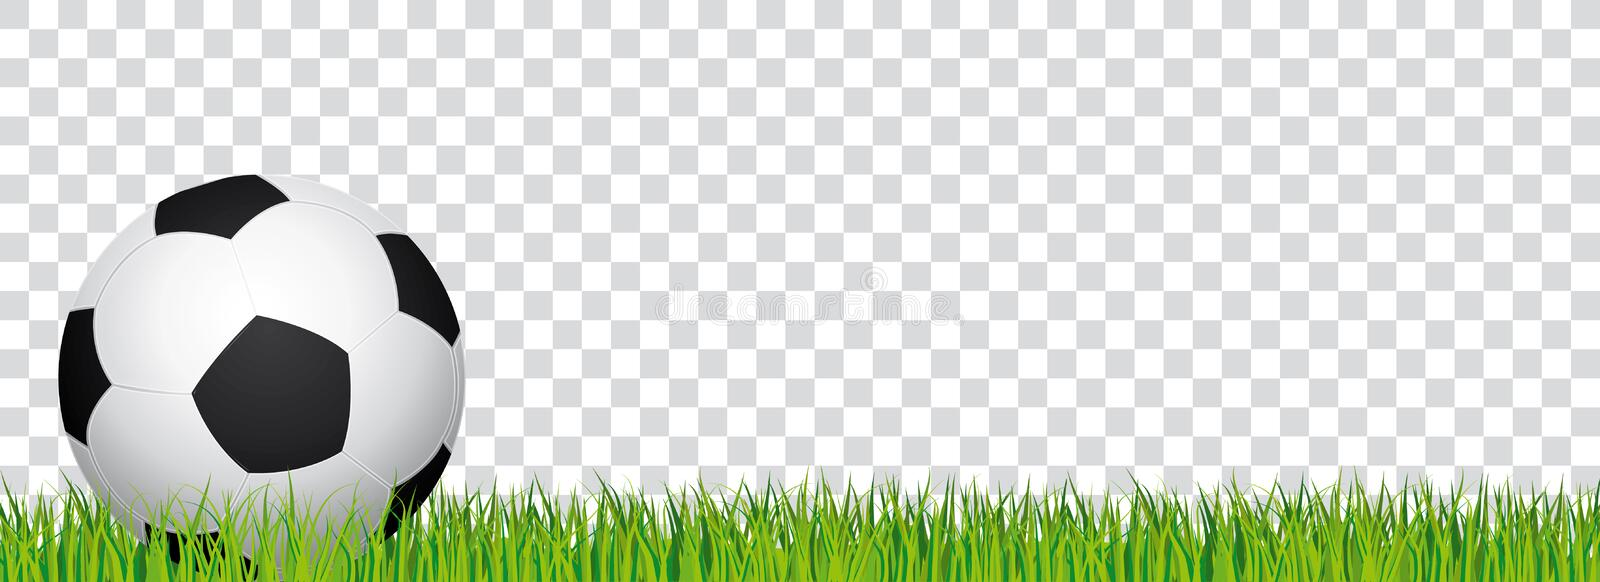 Soccer banner. Football stadium grass and transparent background. Header with soccer ball on the left side. vector illustration